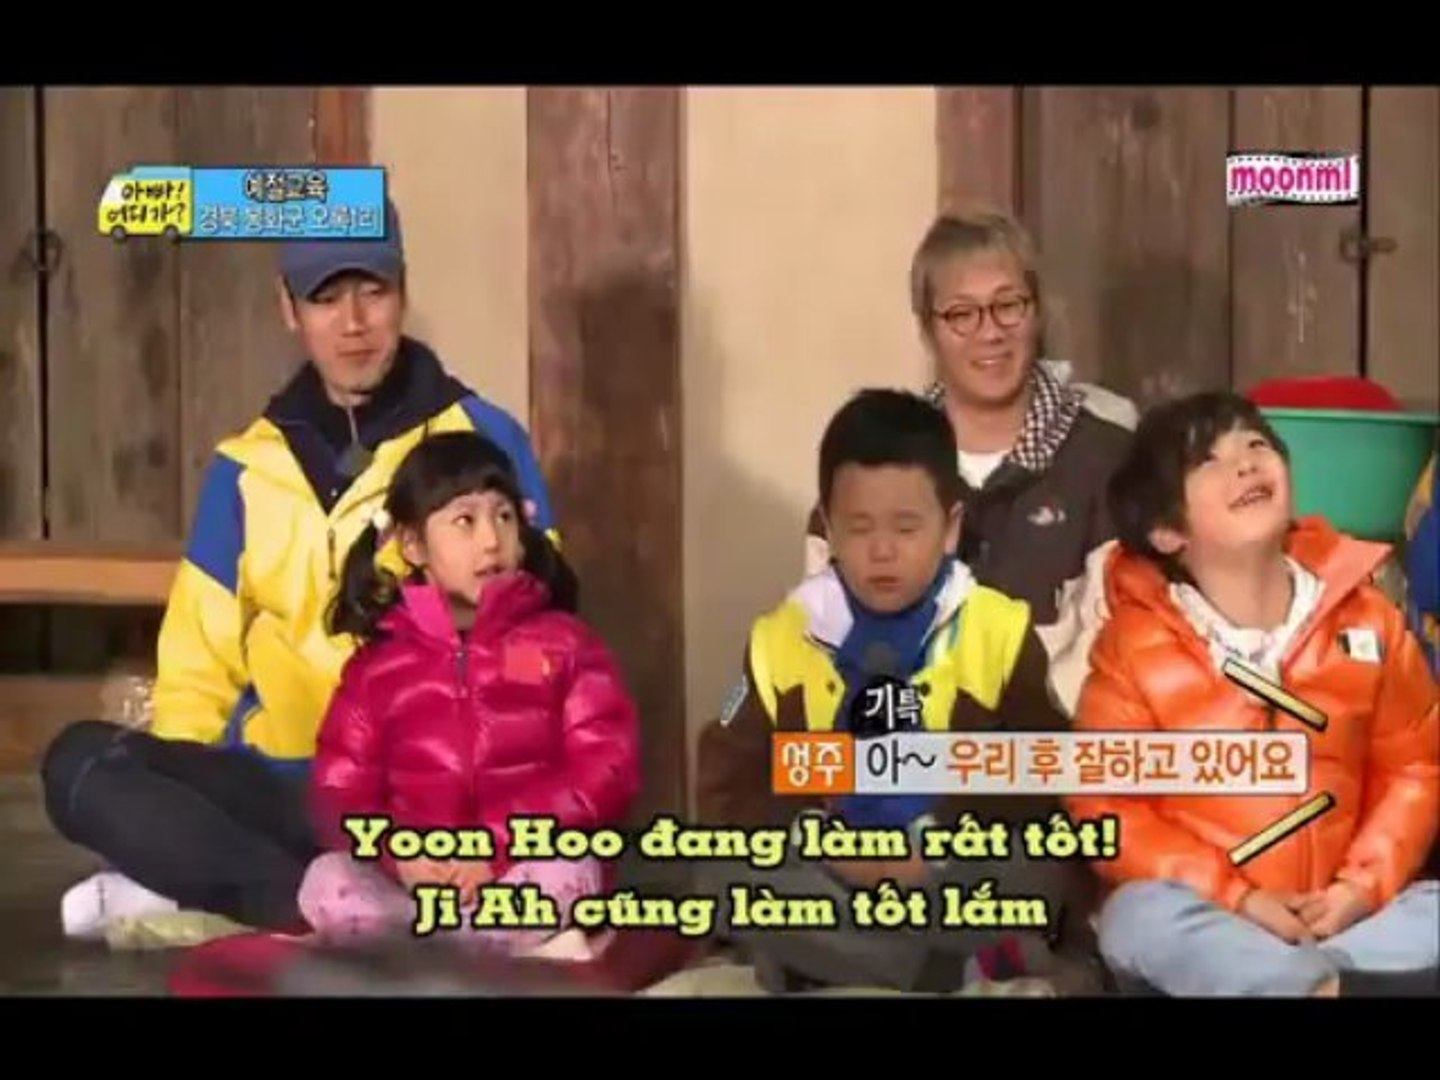 [vietsub] Dad We Are We Going? Ep 16 P2/4